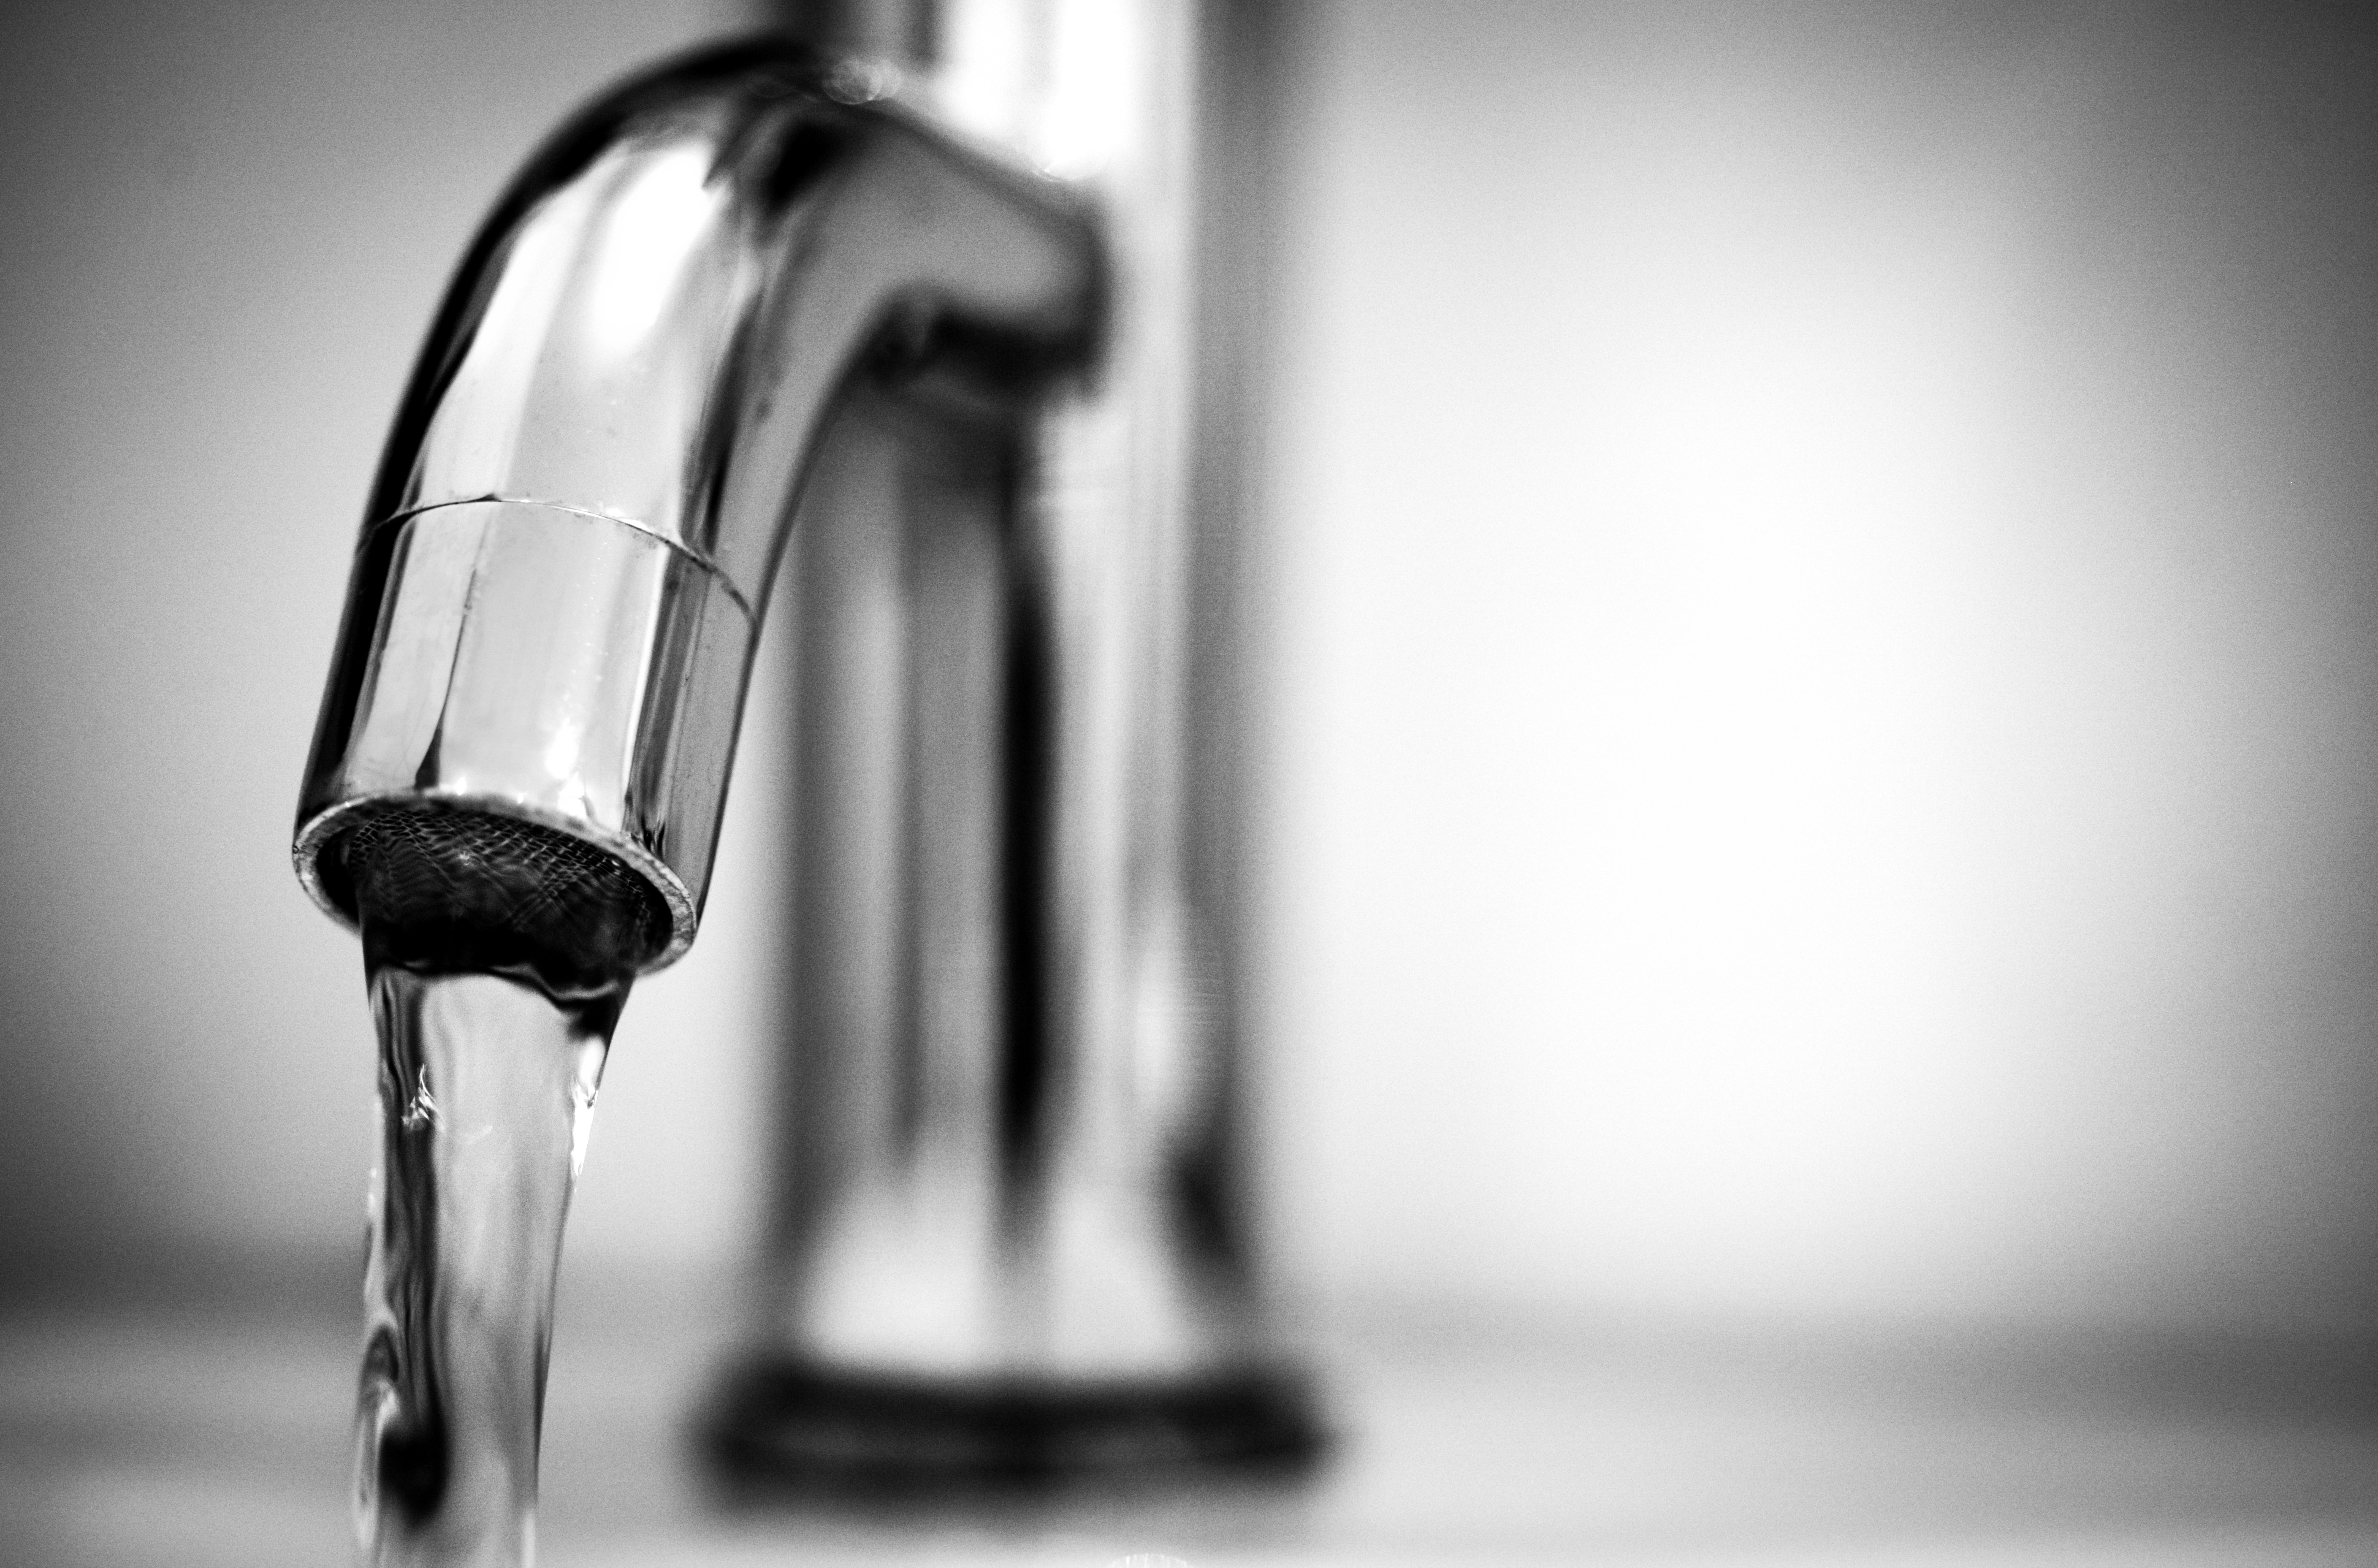 An in-depth review of the best faucet water filters available in 2019.